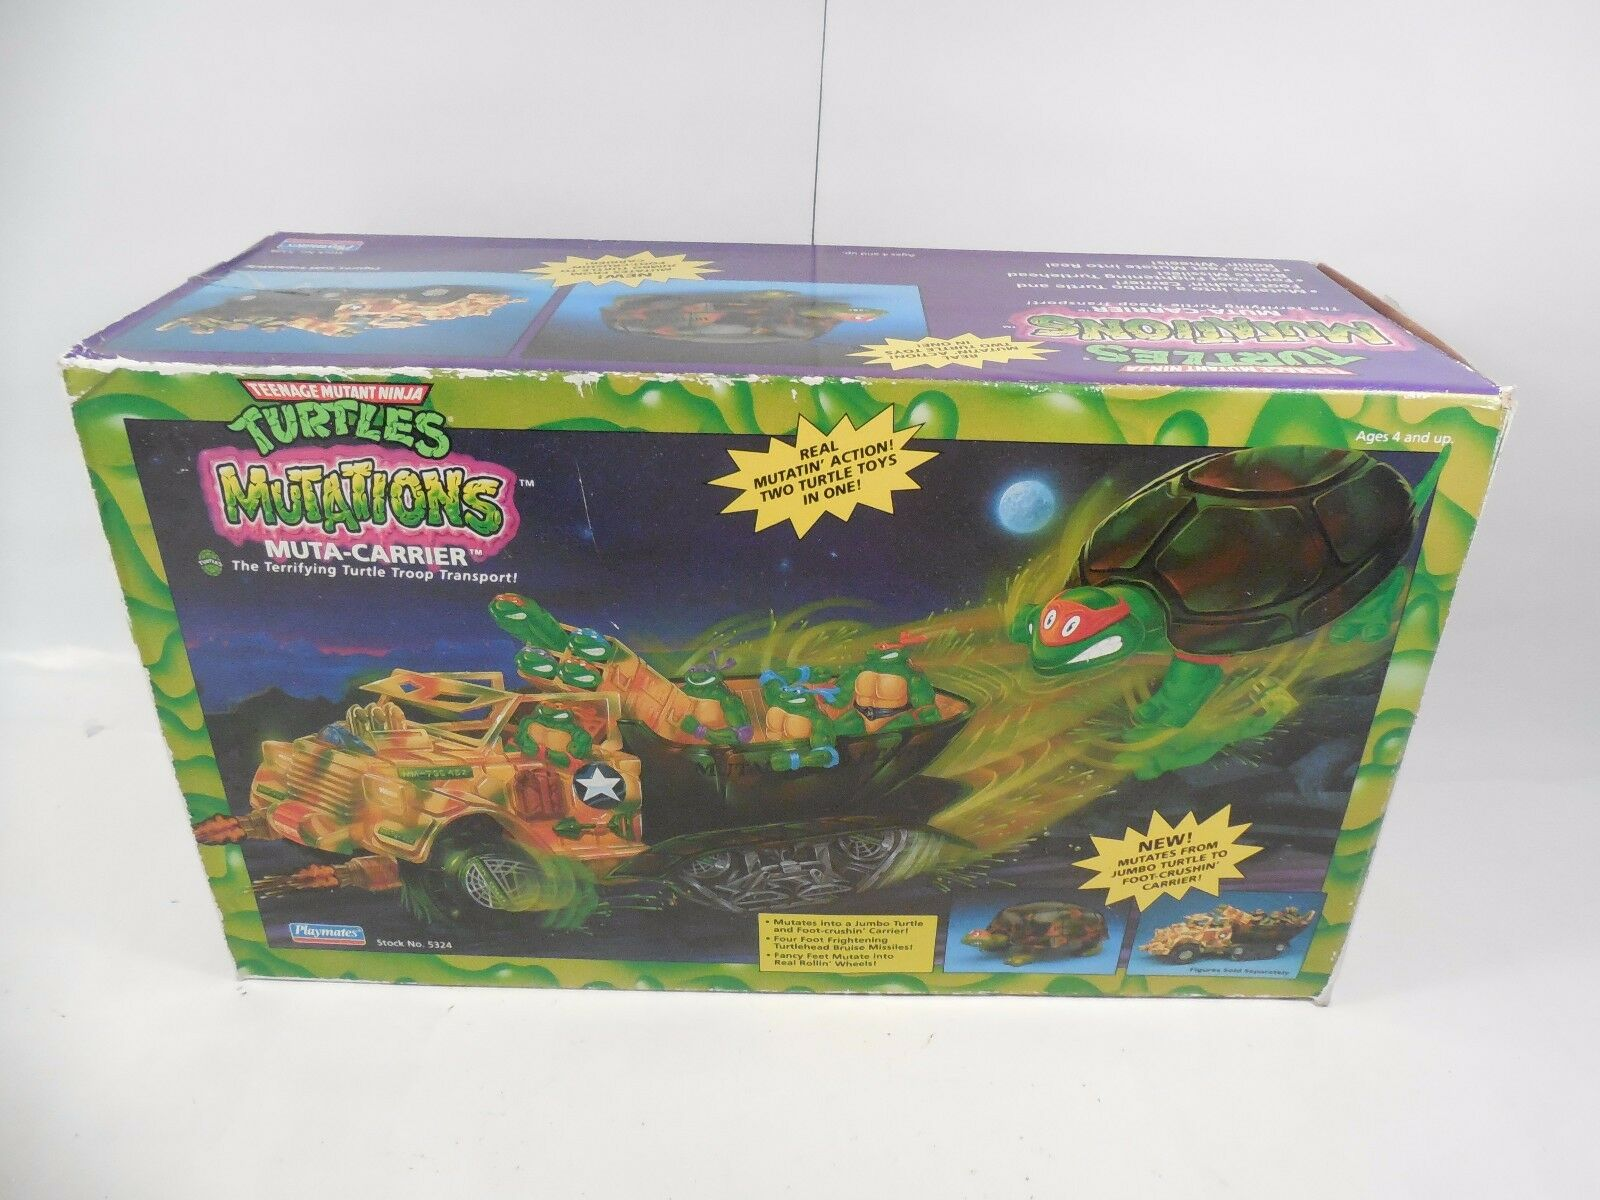 VINTAGE TEENAGE MUTANT NINJA TURTLES MUTATIONS MUTA-CARRIER VEHICLE W/BOX 1992